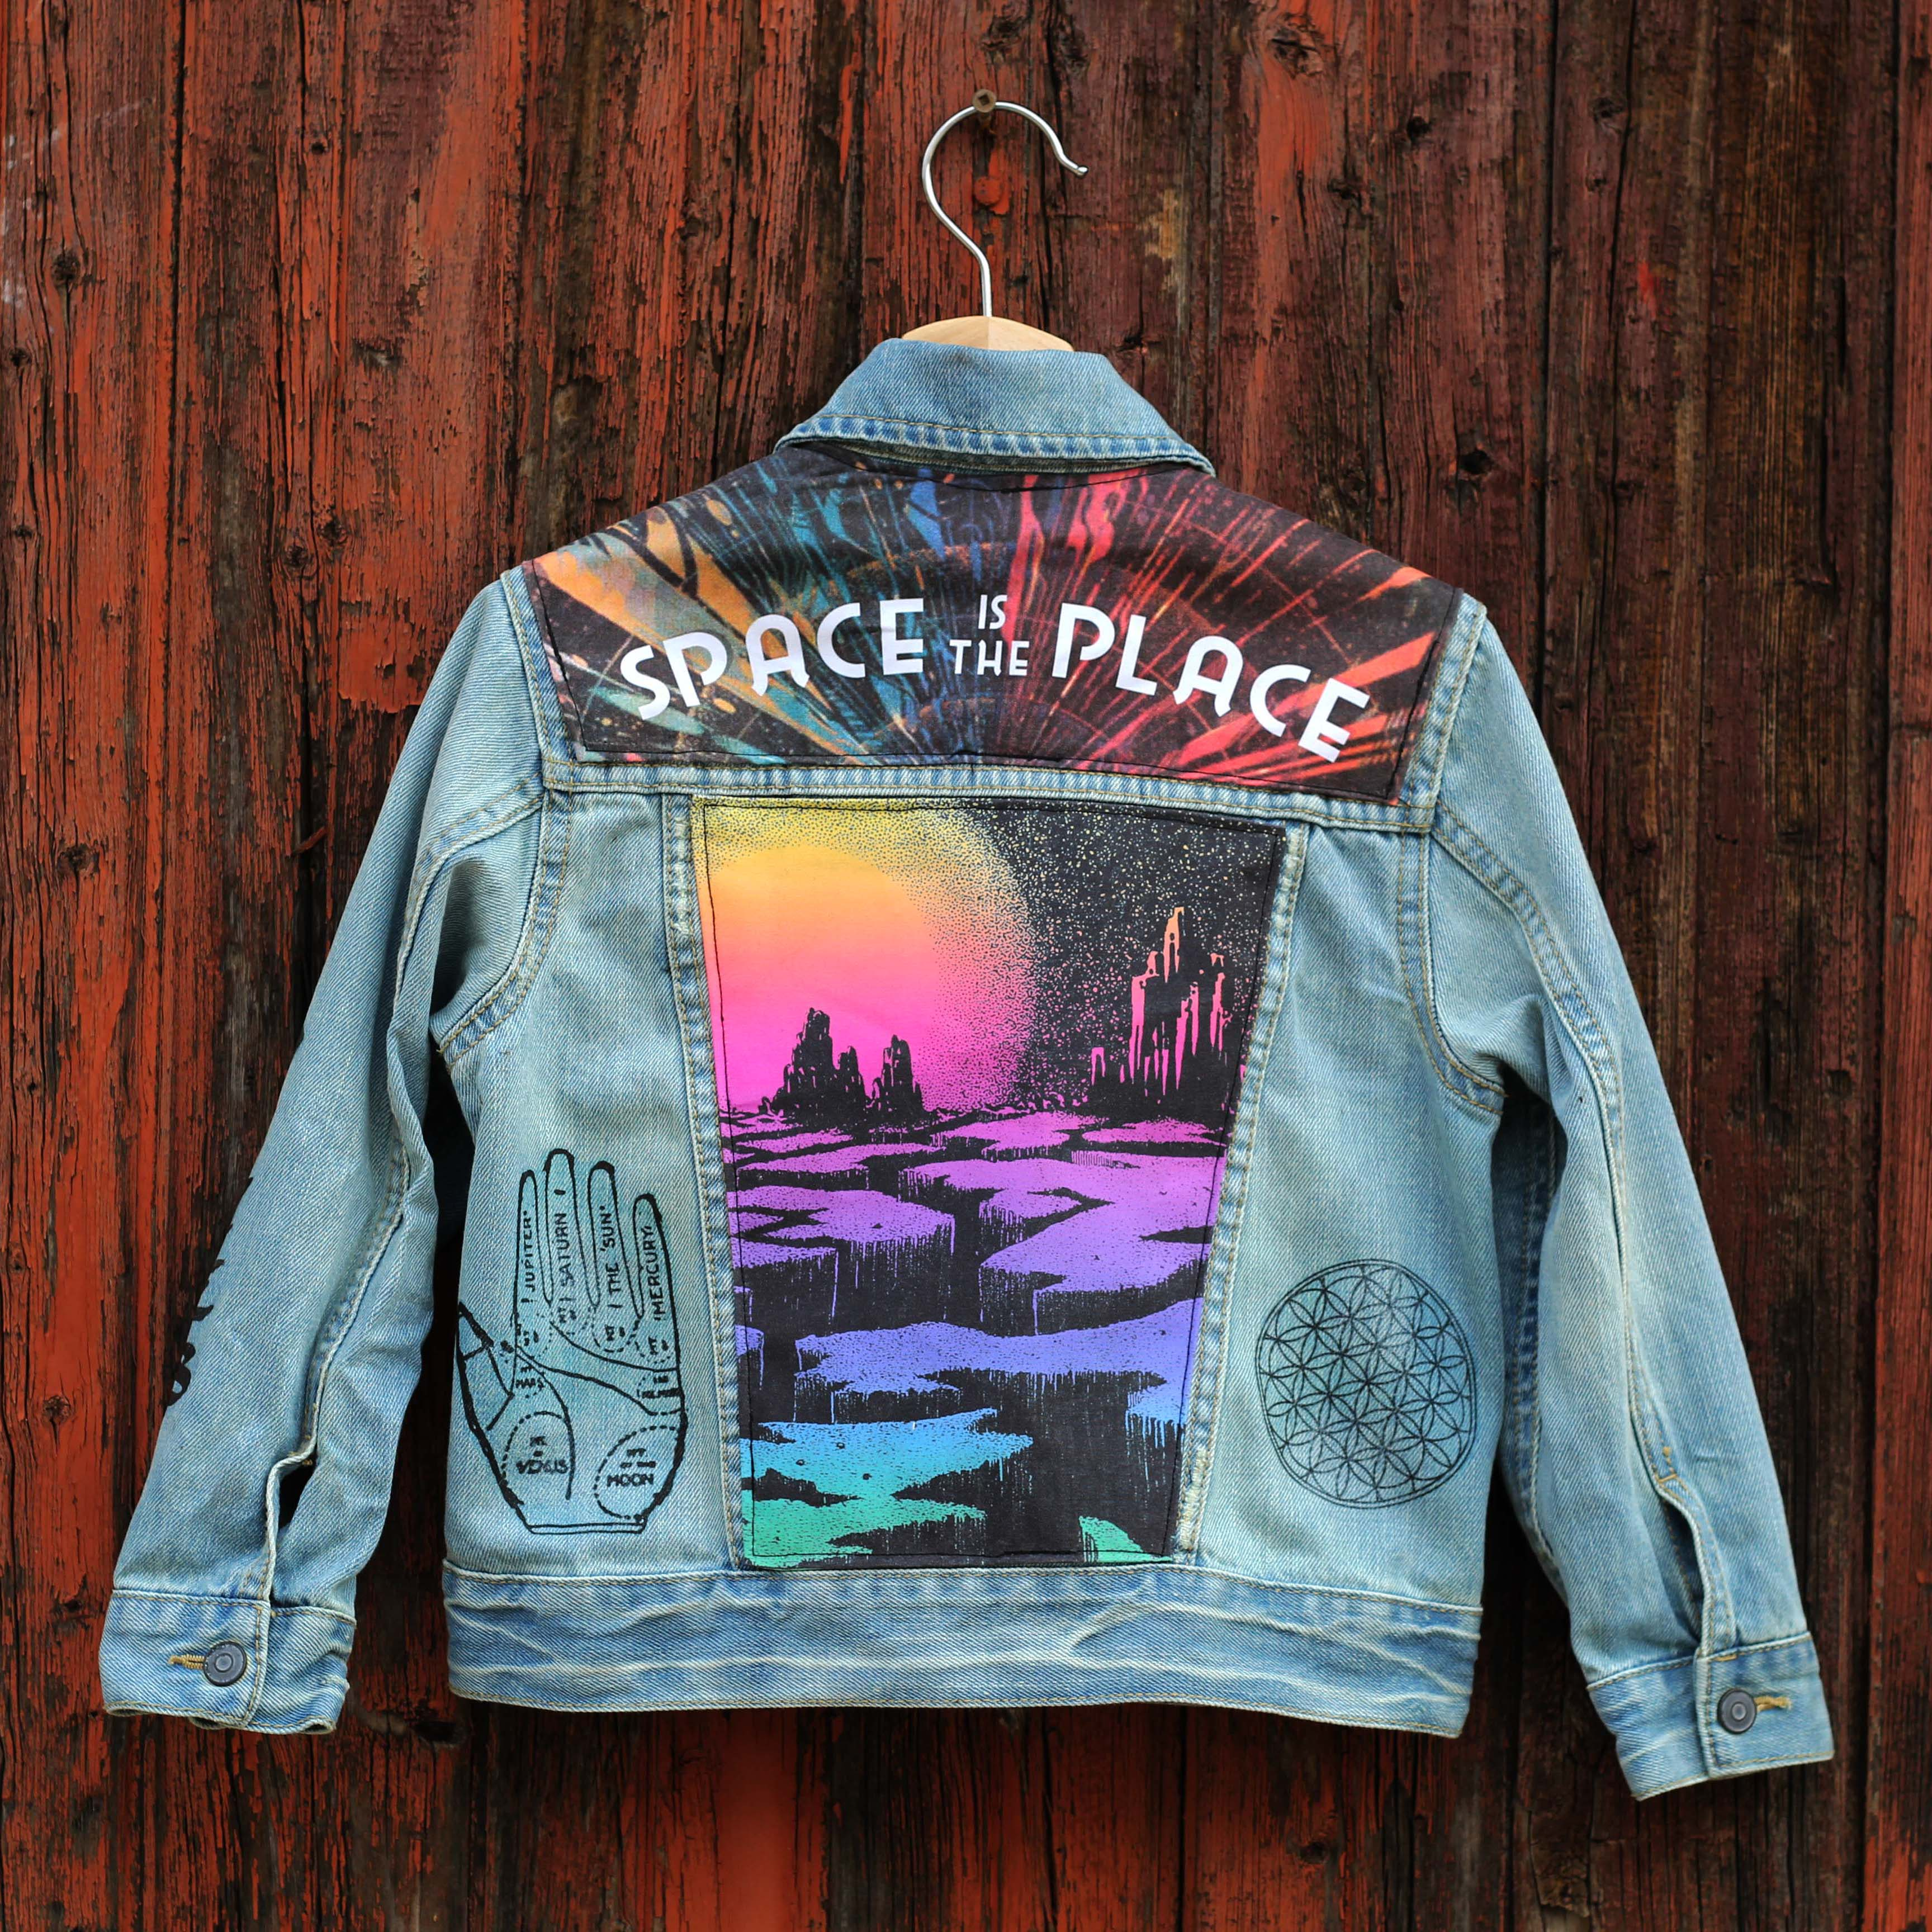 Space Is The Place Unisex Kids Denim Jacket